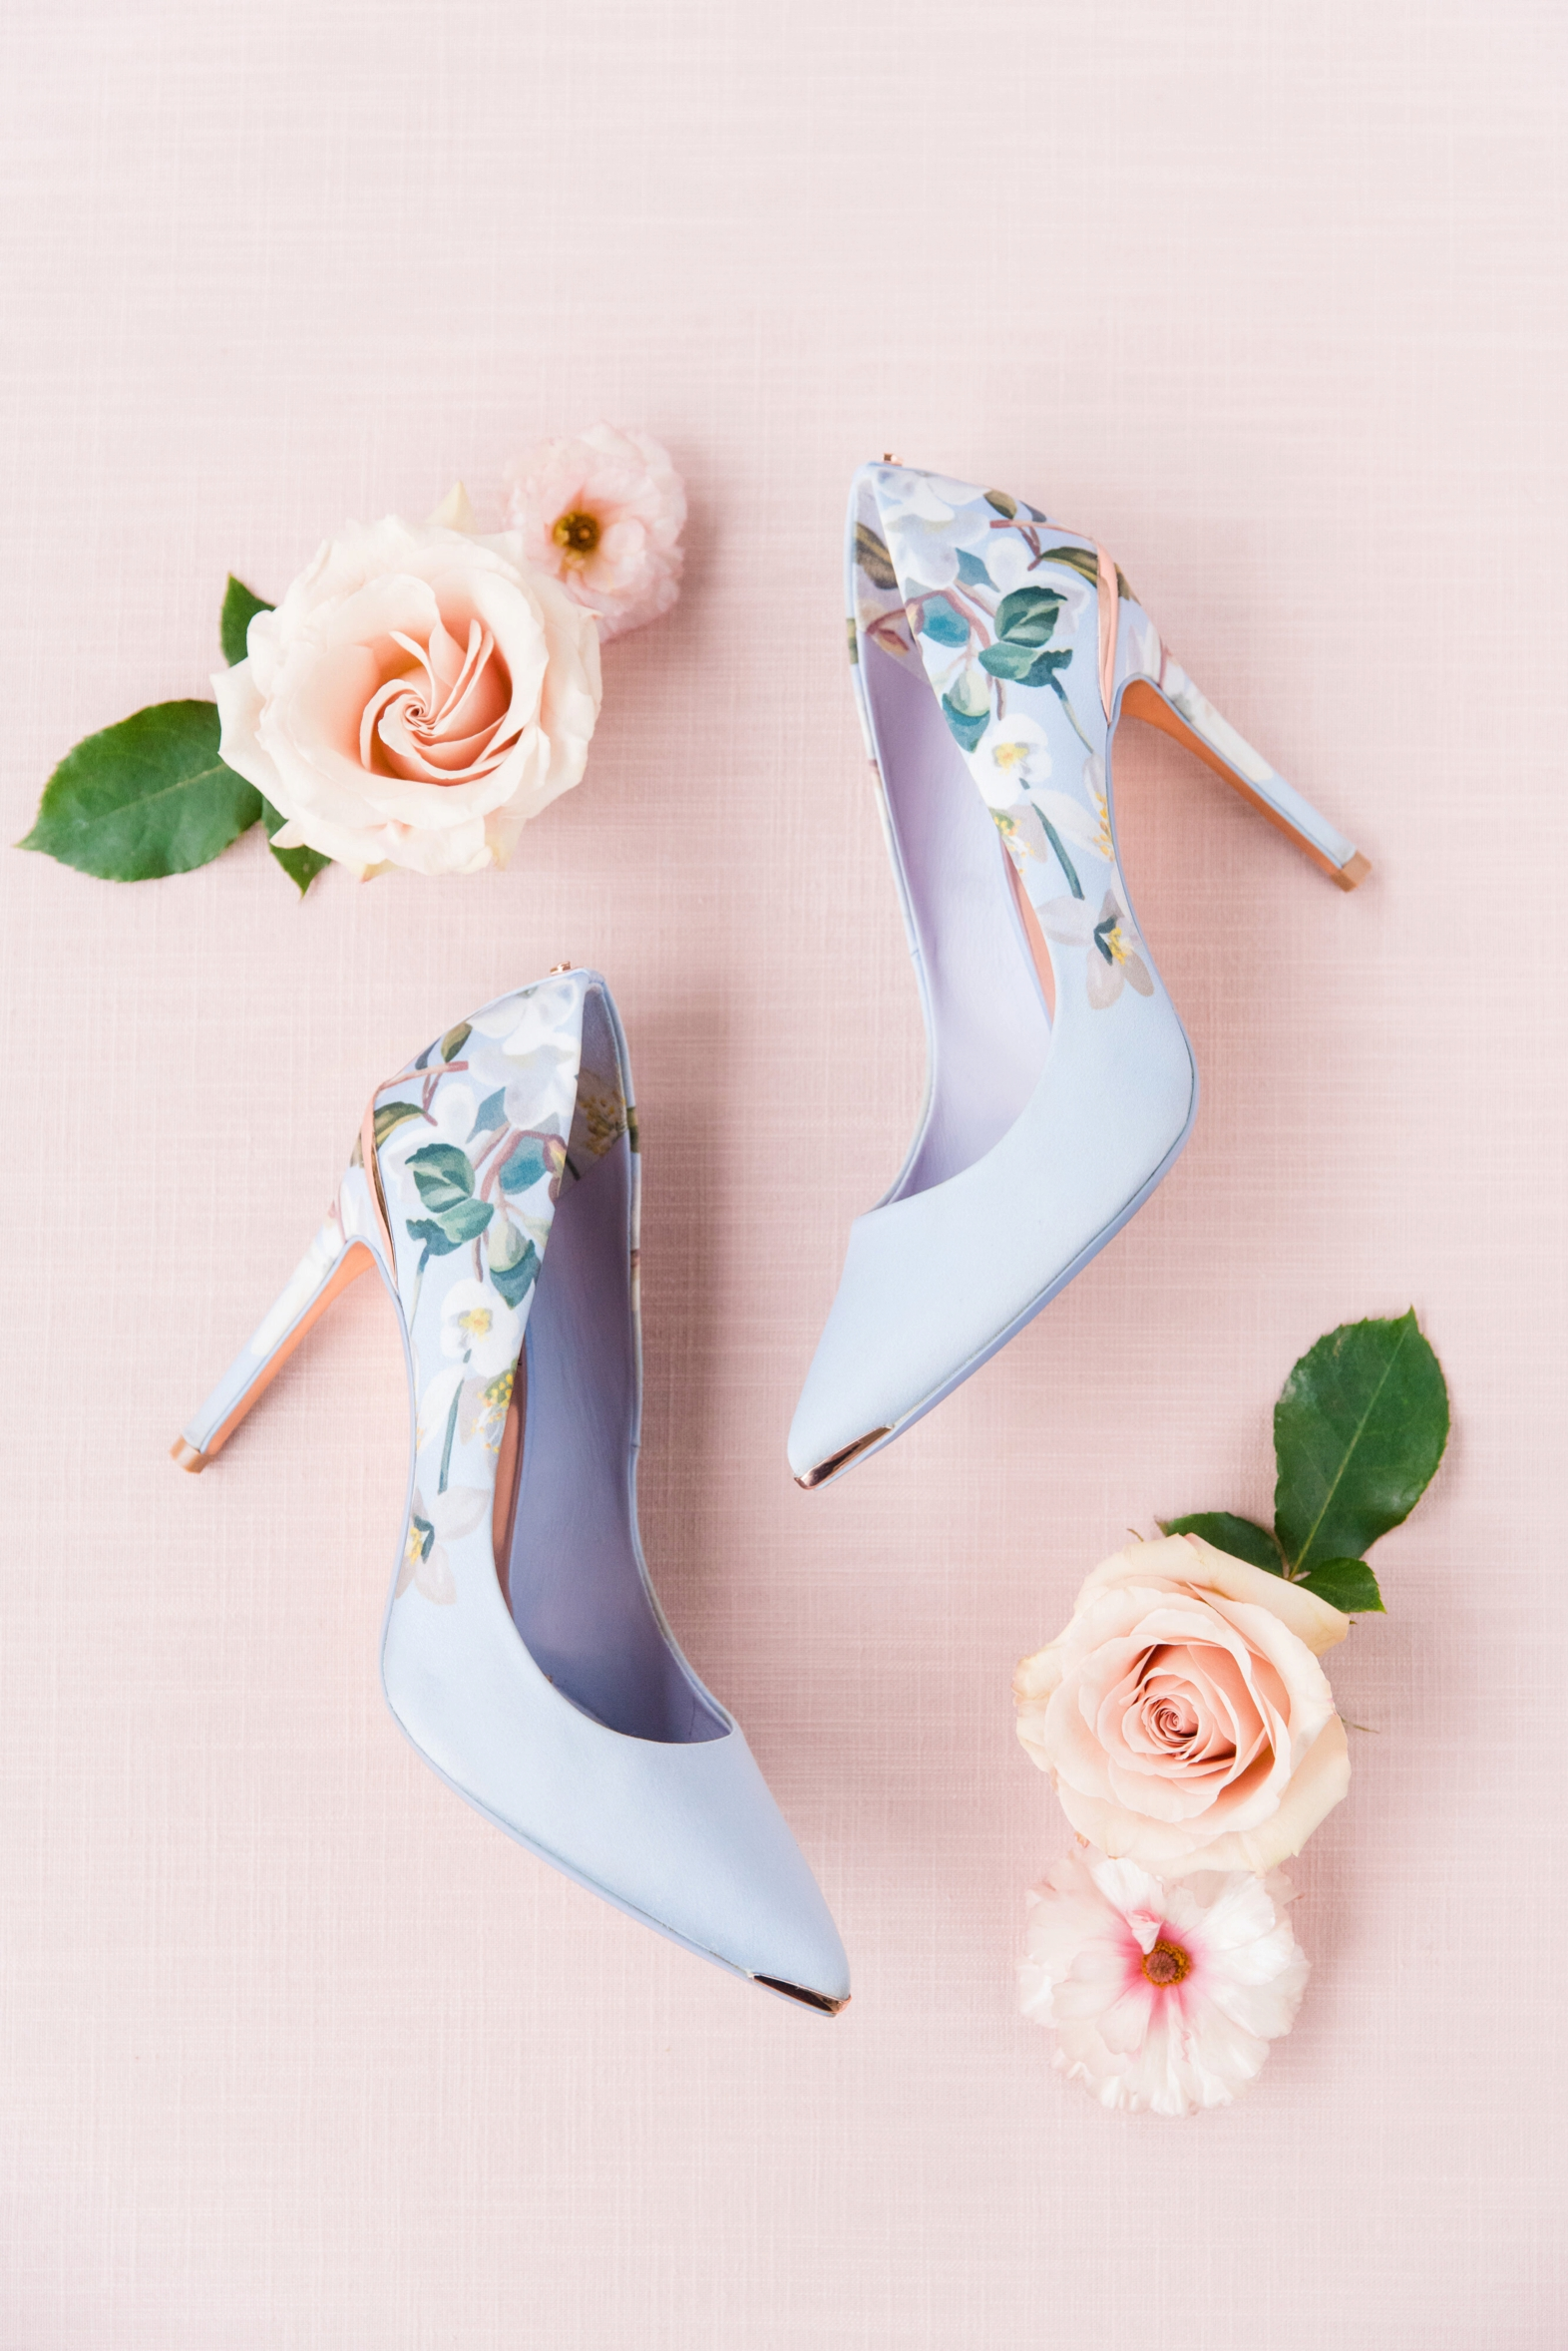 Handpainted pumps with floral design photographed by Dana Cubbage - South Carolina